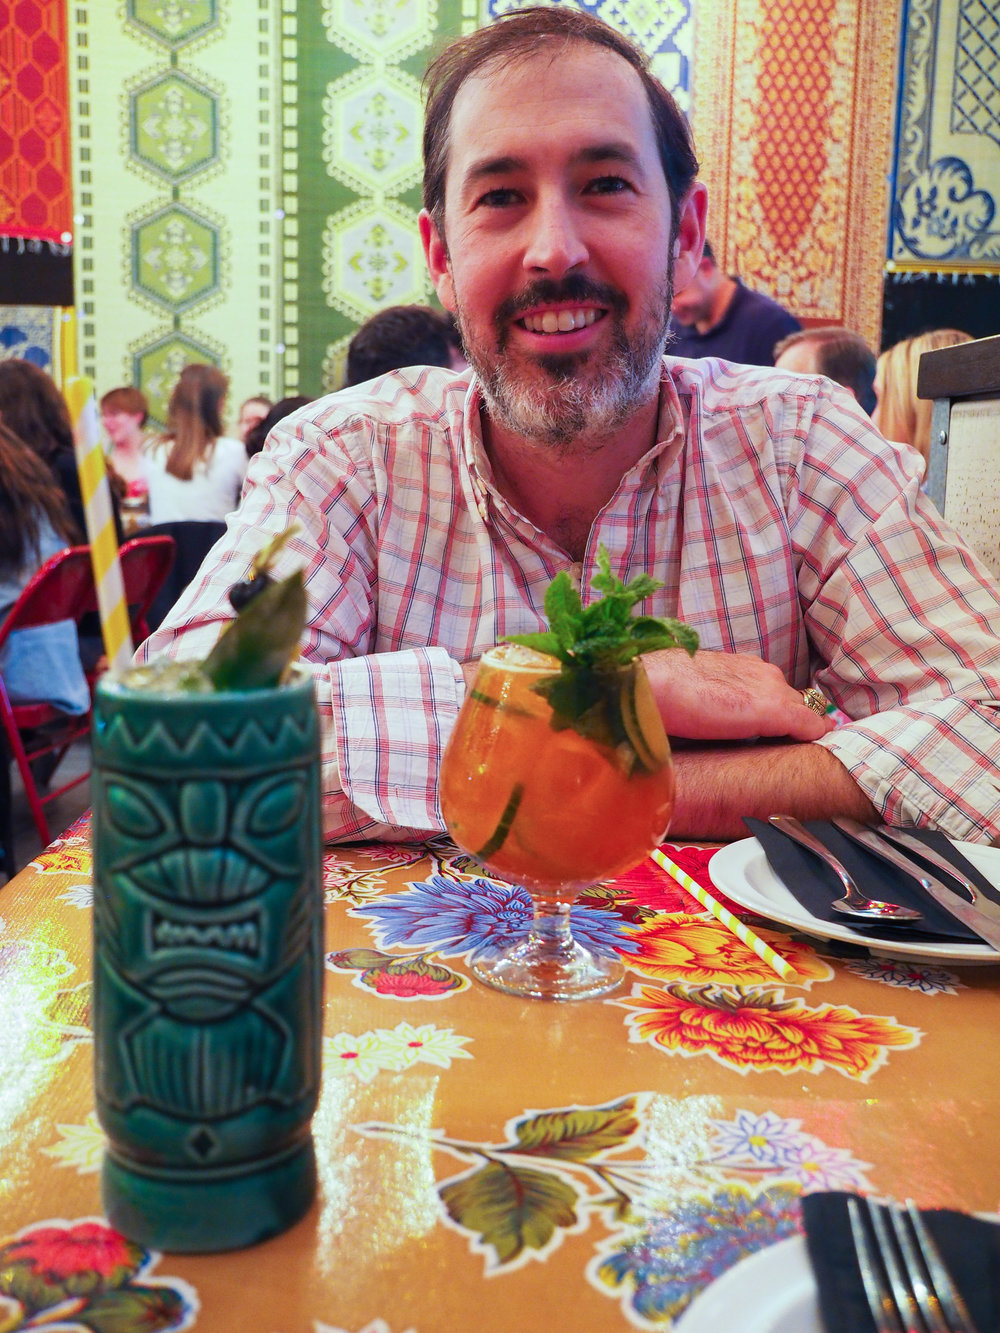 We were kinda obsessed with the tiki cocktail menu. Mine was a spicy, lime-y, mezcal-y drink.